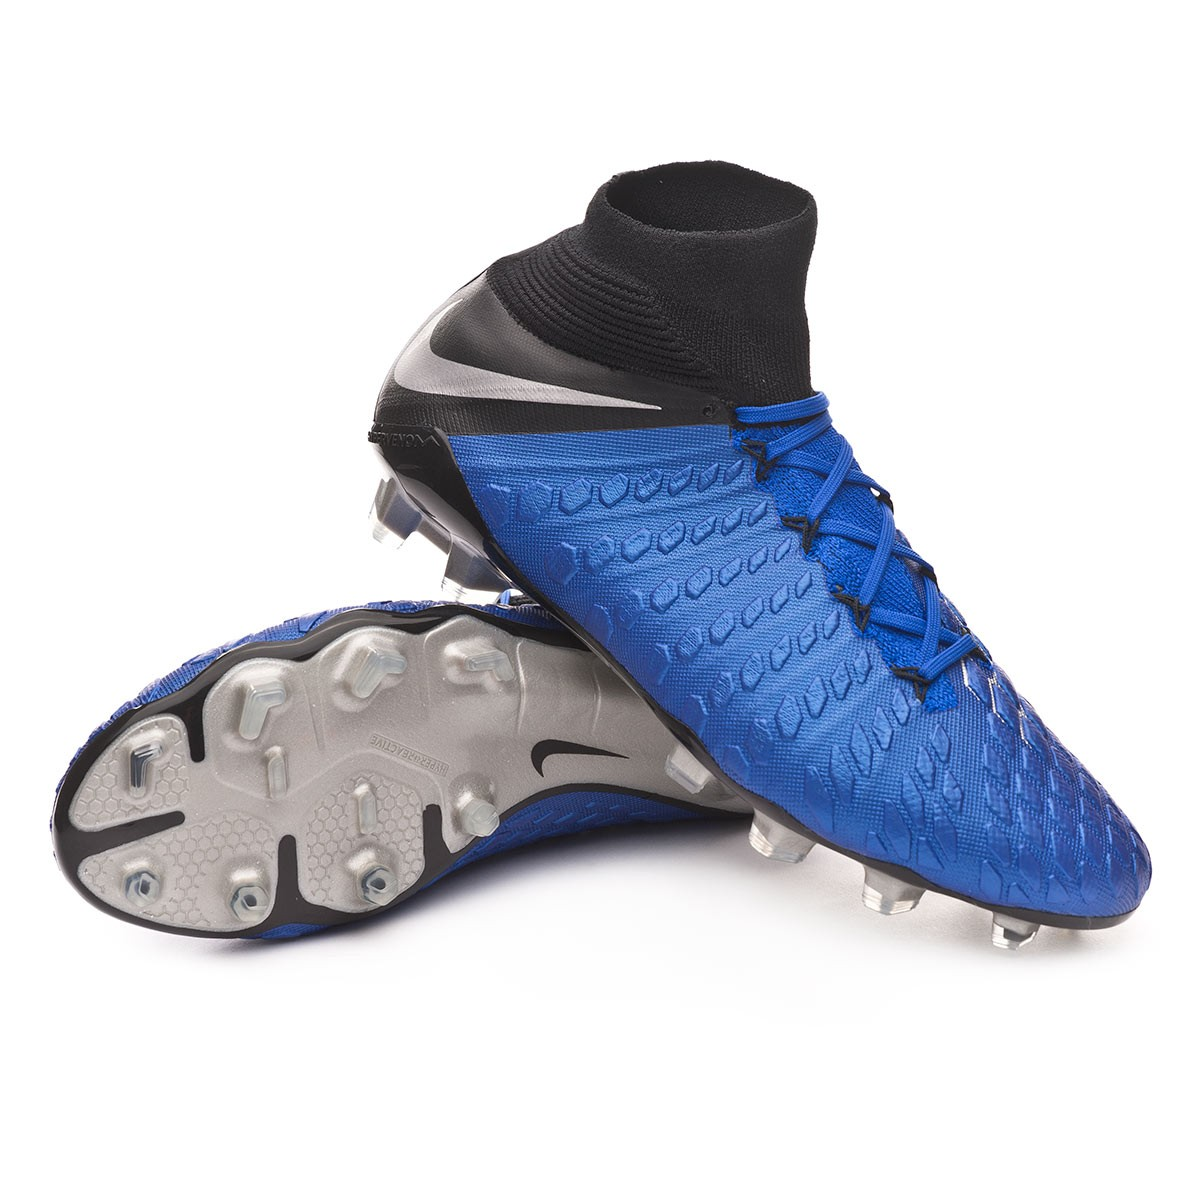 hot sale online a0fe3 5a5ed Bota Hypervenom Phantom III Elite DF FG Racer blue-Metallic  silver-Black-Volt